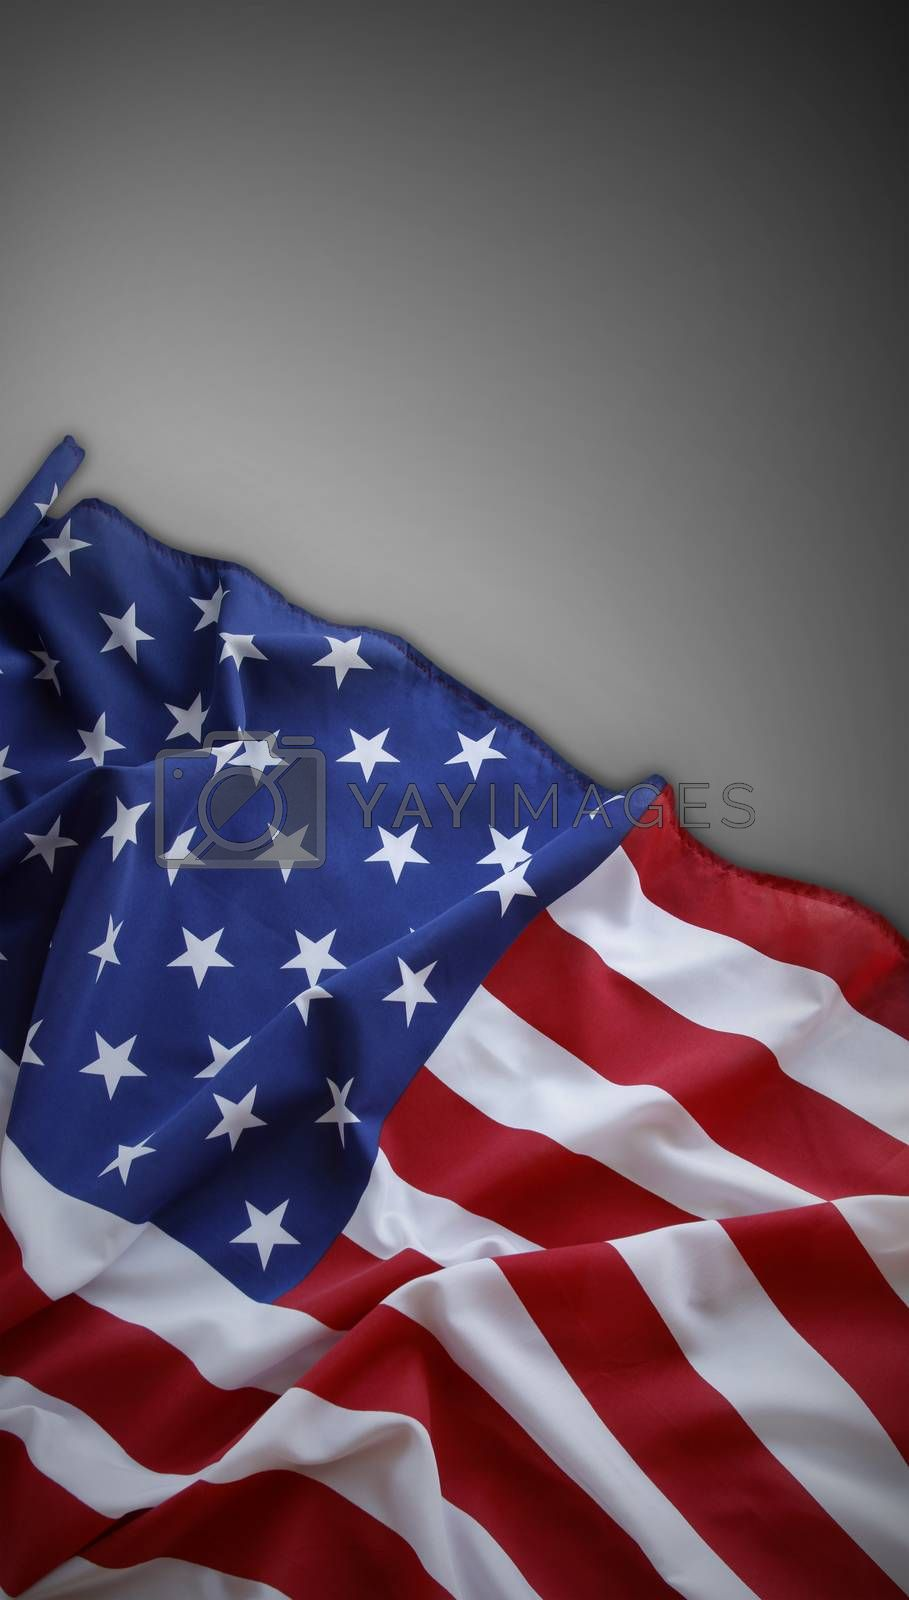 Closeup of American flag on plain background. Copy space